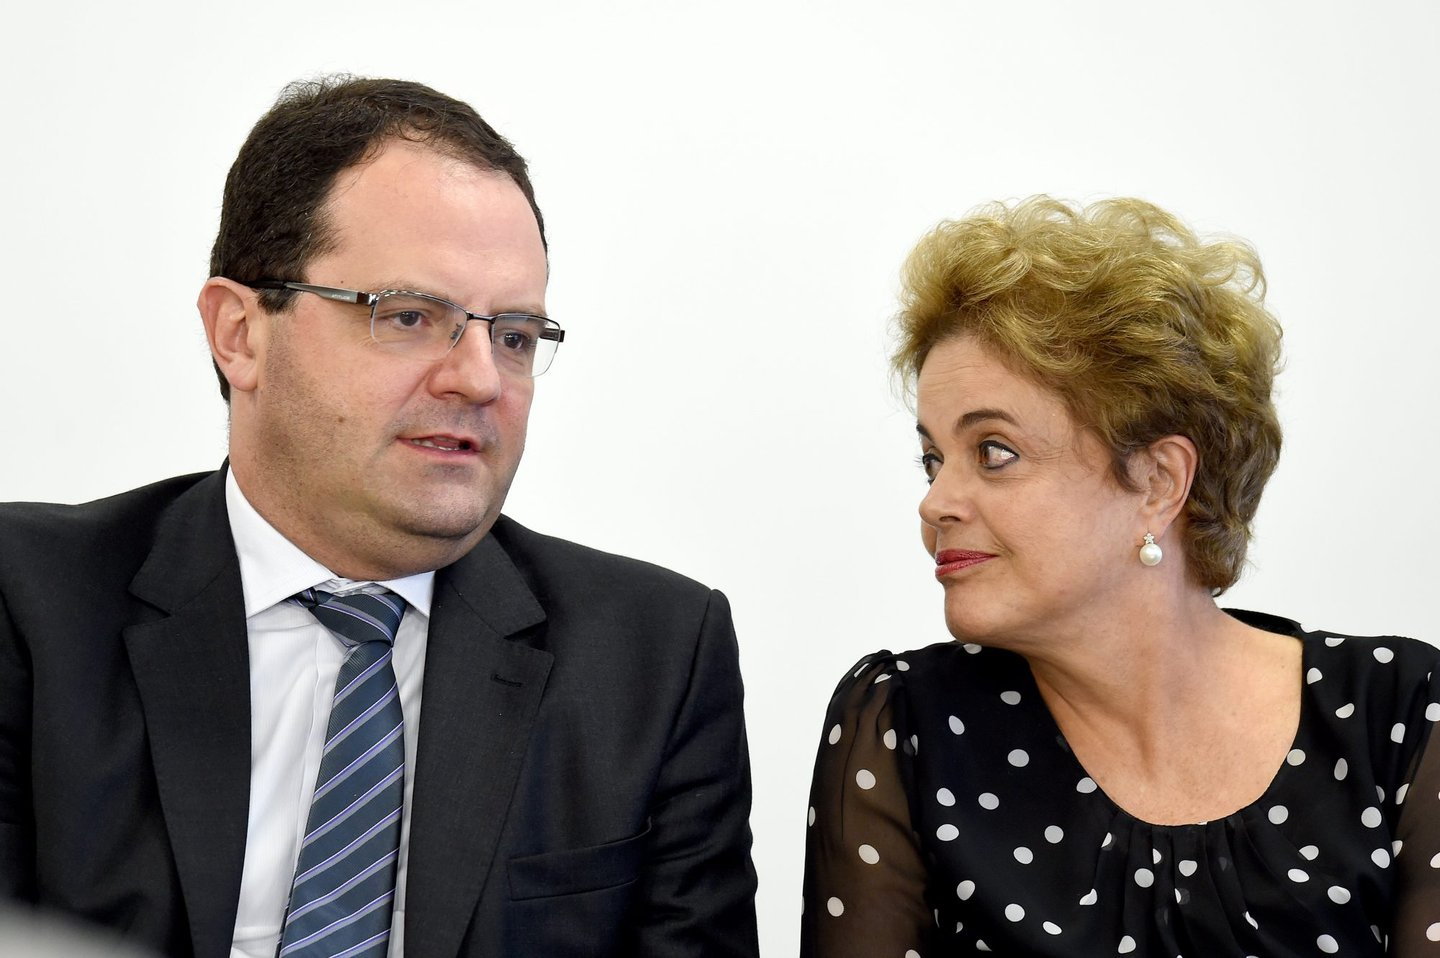 "Brazilian President Dilma Rousseff (R) talks to her Finance Minister Nelson Barbosa during a ceremony to renovate the leasing contract regarding the use of the Paranagua Container Terminal, at Planalto Palace in Brasilia, on April 13, 2016. Brazil's President Dilma Rousseff vowed Wednesday she will ""fight to the last minute"" against efforts to impeach her, despite key allies deserting her as she clings to office. Lawmakers will hold a crucial vote on impeachment proceedings against Rousseff in congress on Sunday. / AFP / EVARISTO SA (Photo credit should read EVARISTO SA/AFP/Getty Images)"